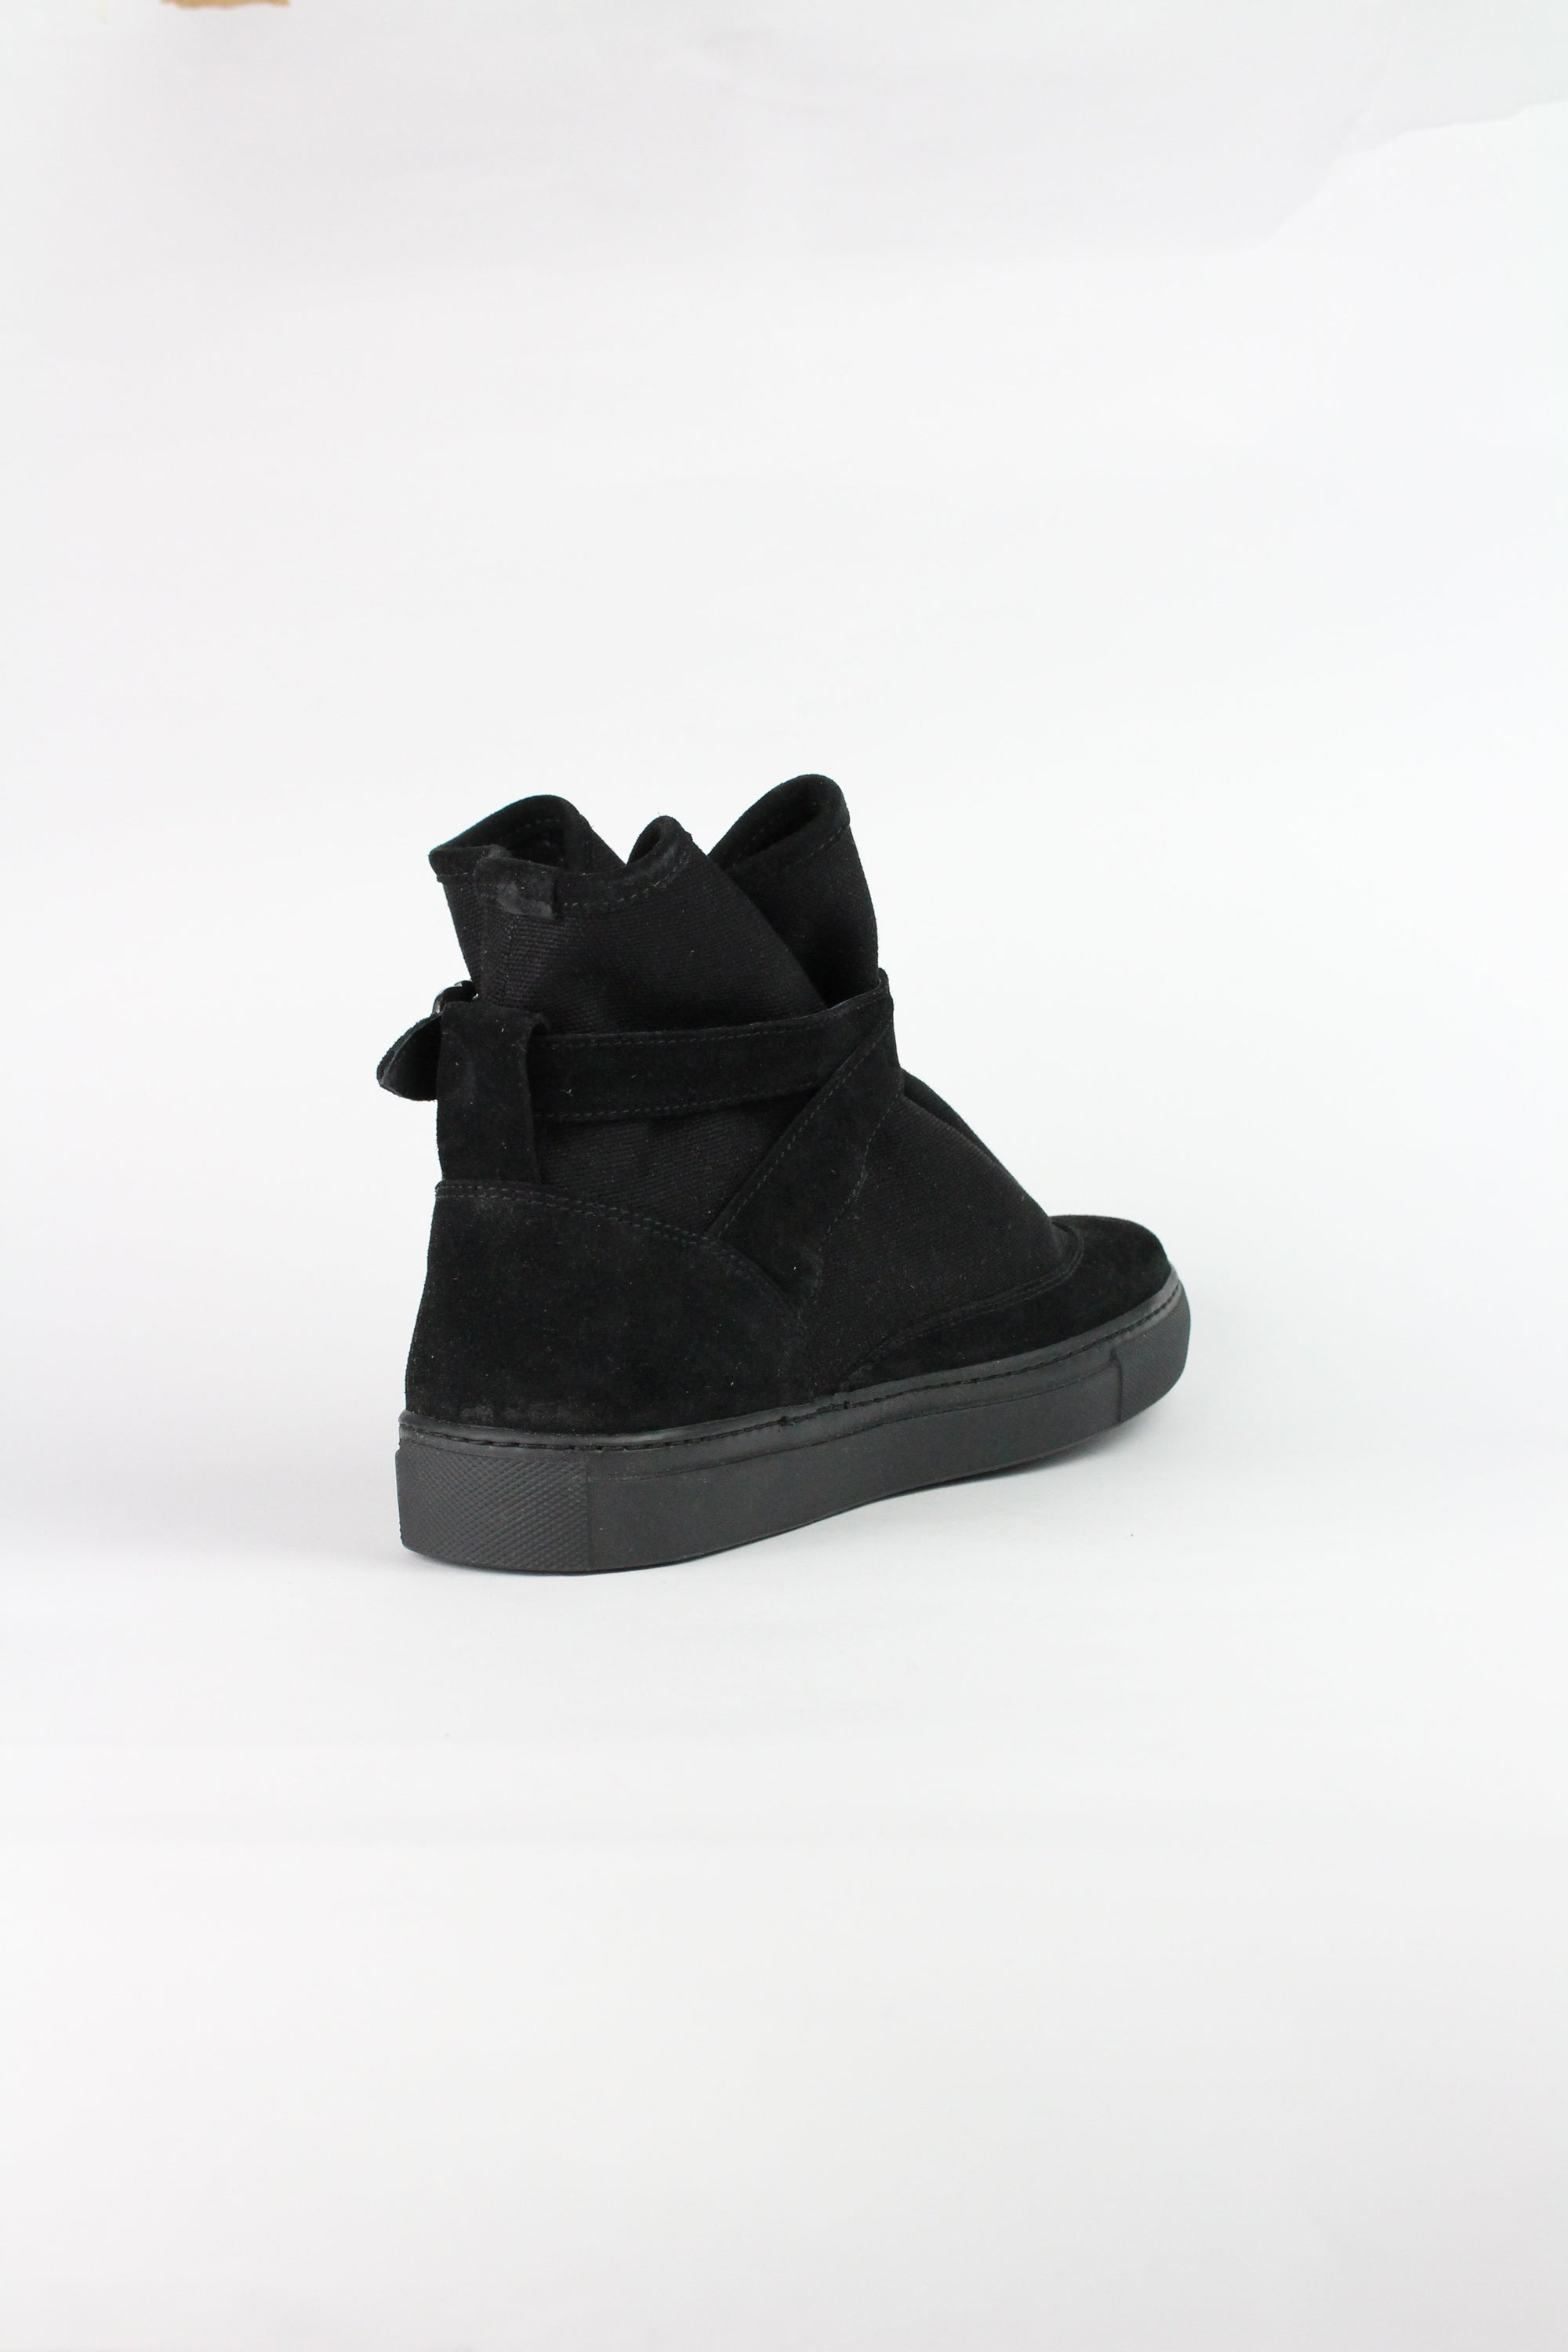 HIGHPAD SNEAKER BLACK CANVAS W/ SUEDE-shoes-A Child Of The Jago